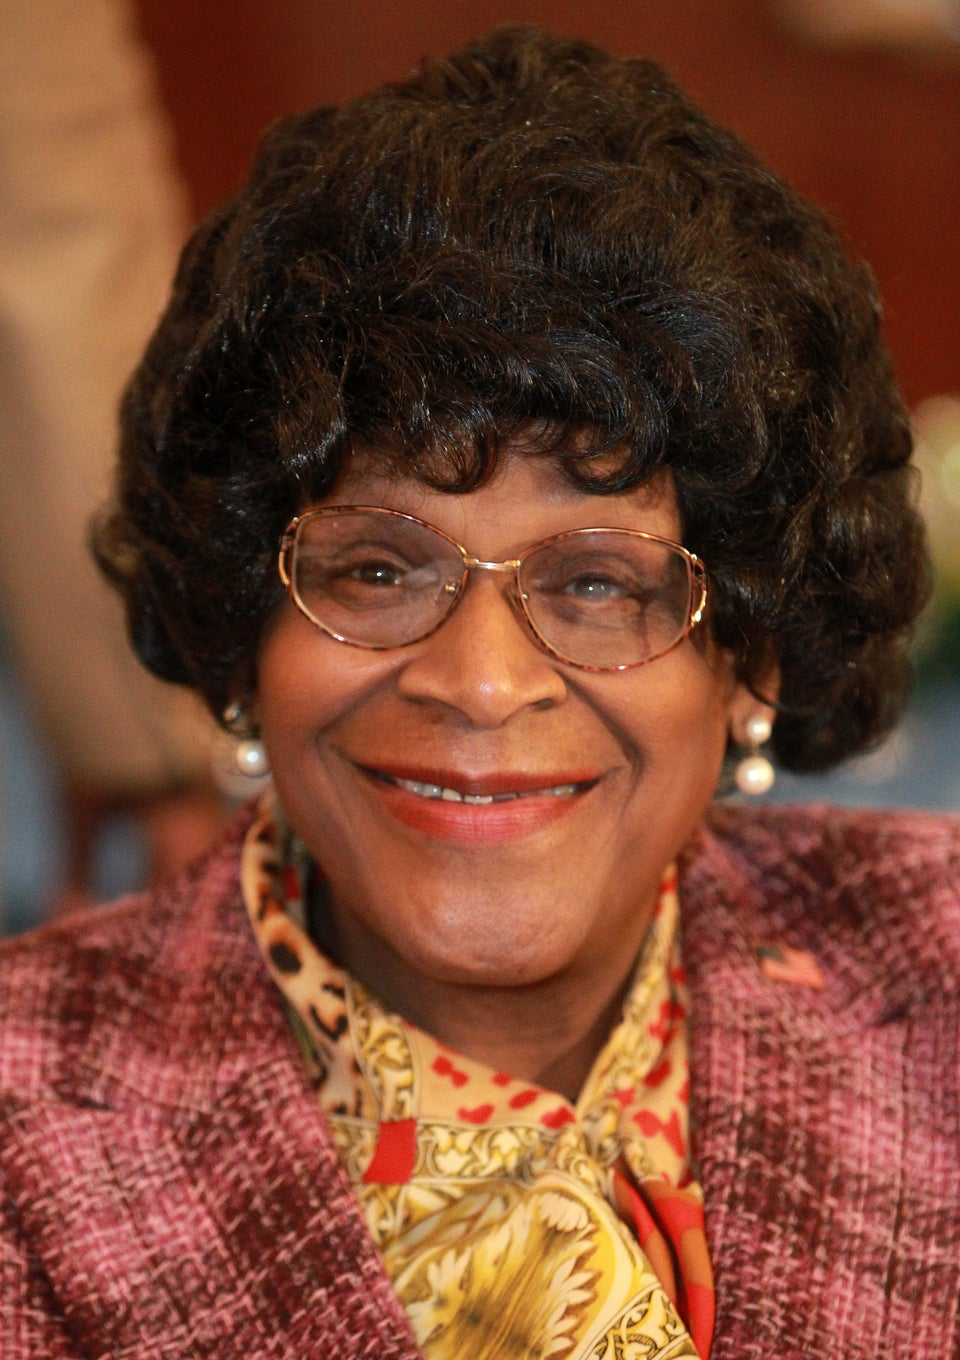 Before Danica Roem Became The First Openly TransgenderState Representative, There Was Althea Garrison